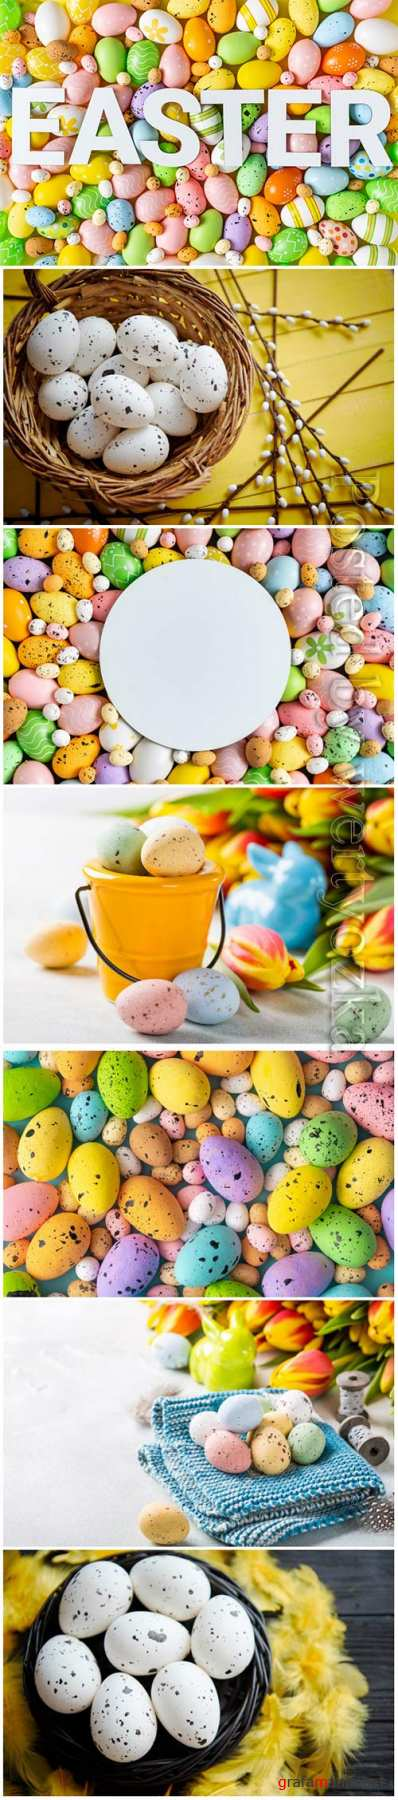 Happy Easter stock photo, Easter eggs, spring flowers # 5